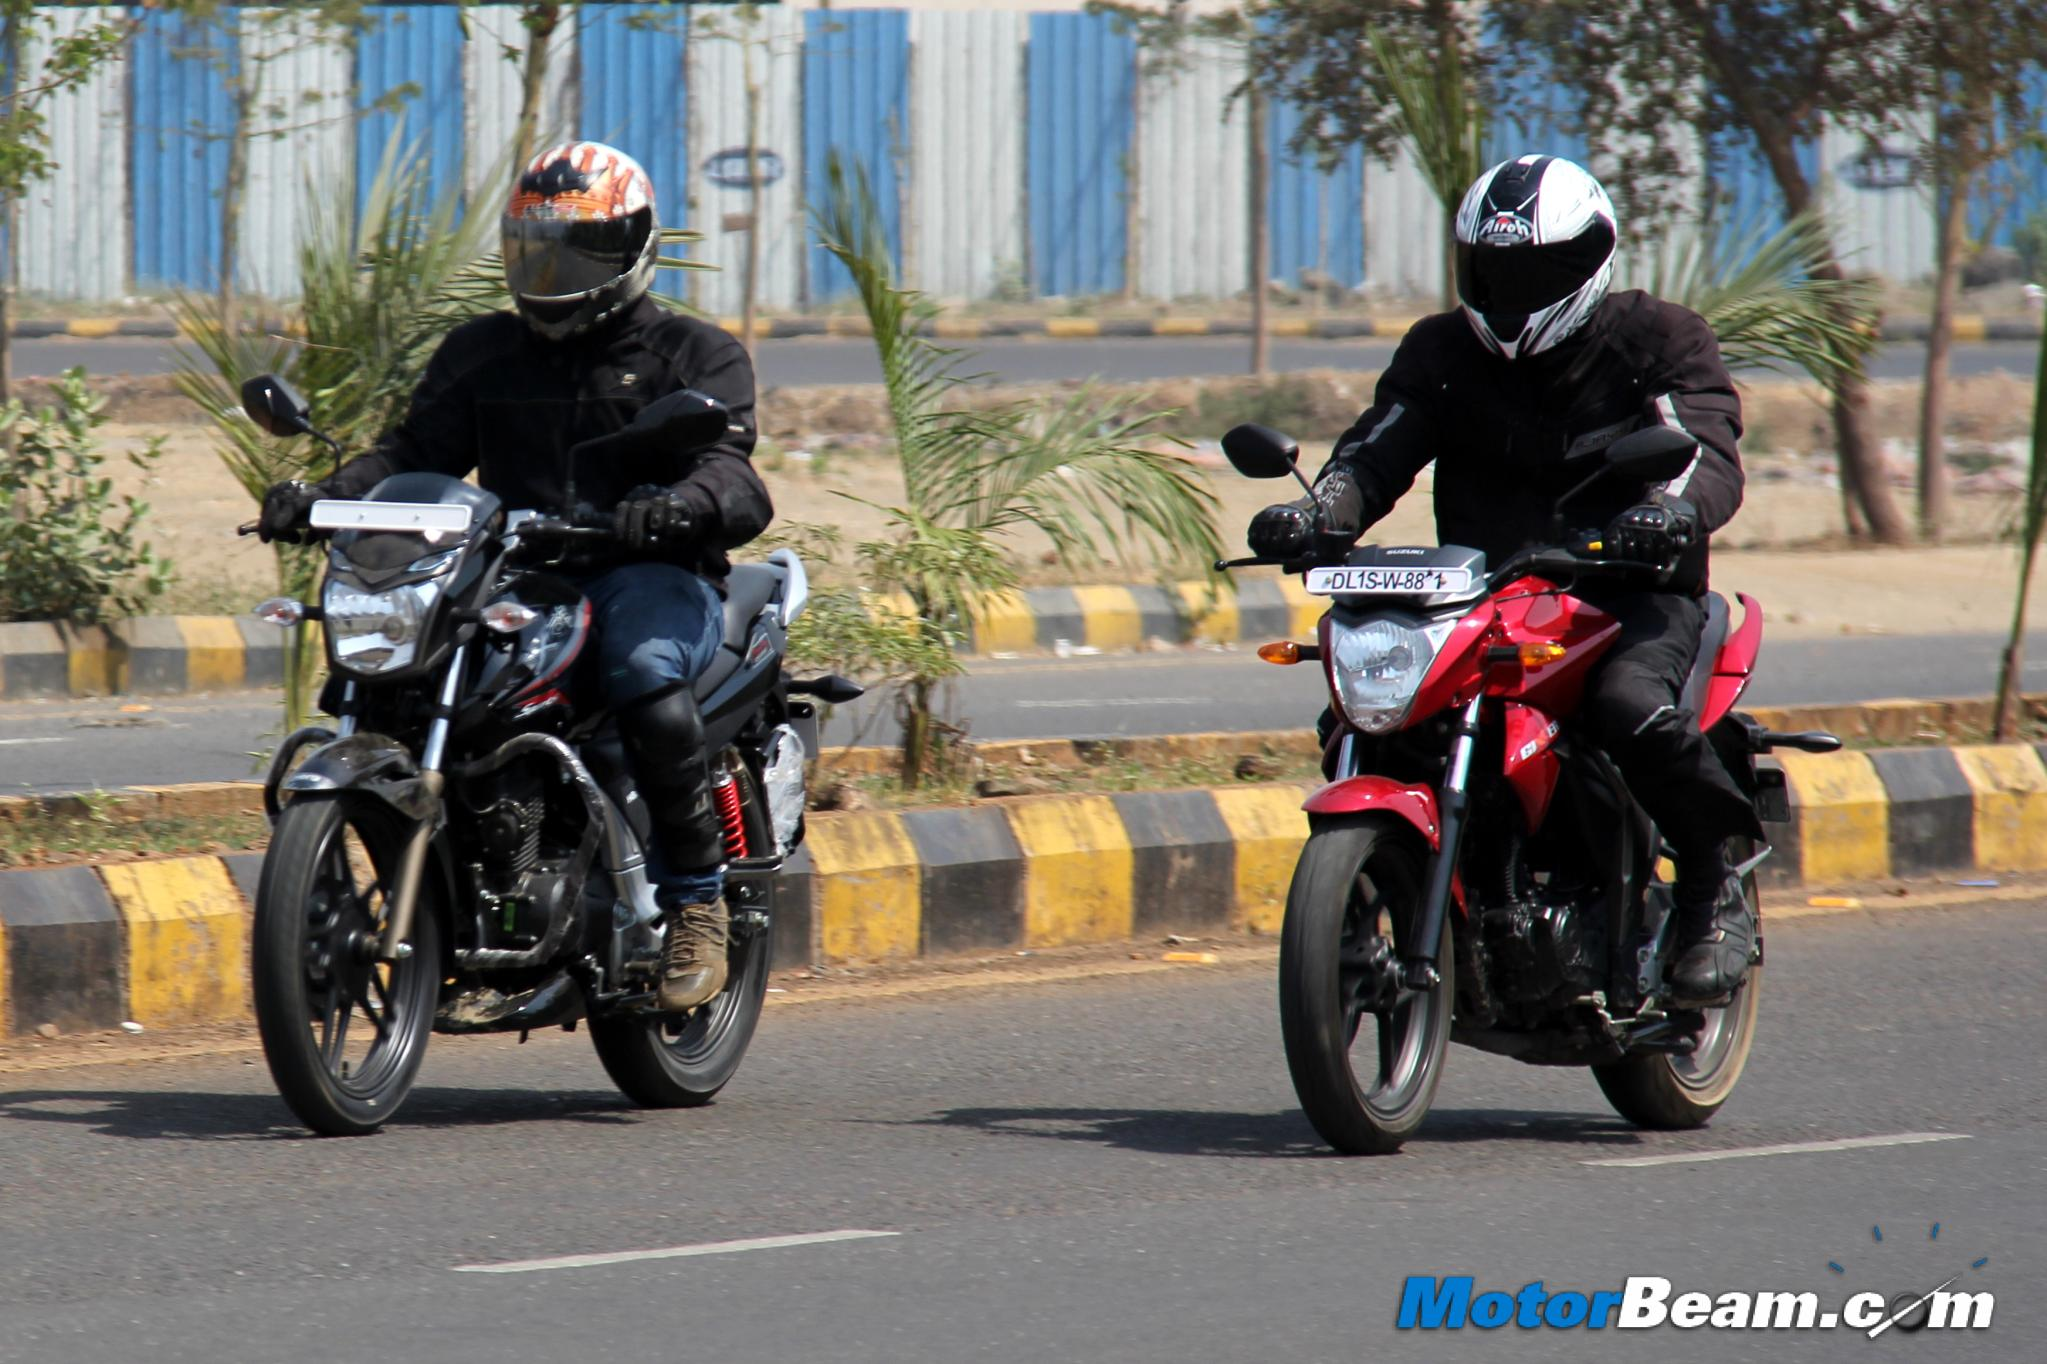 Hero Xtreme Sports vs Suzuki Gixxer Review